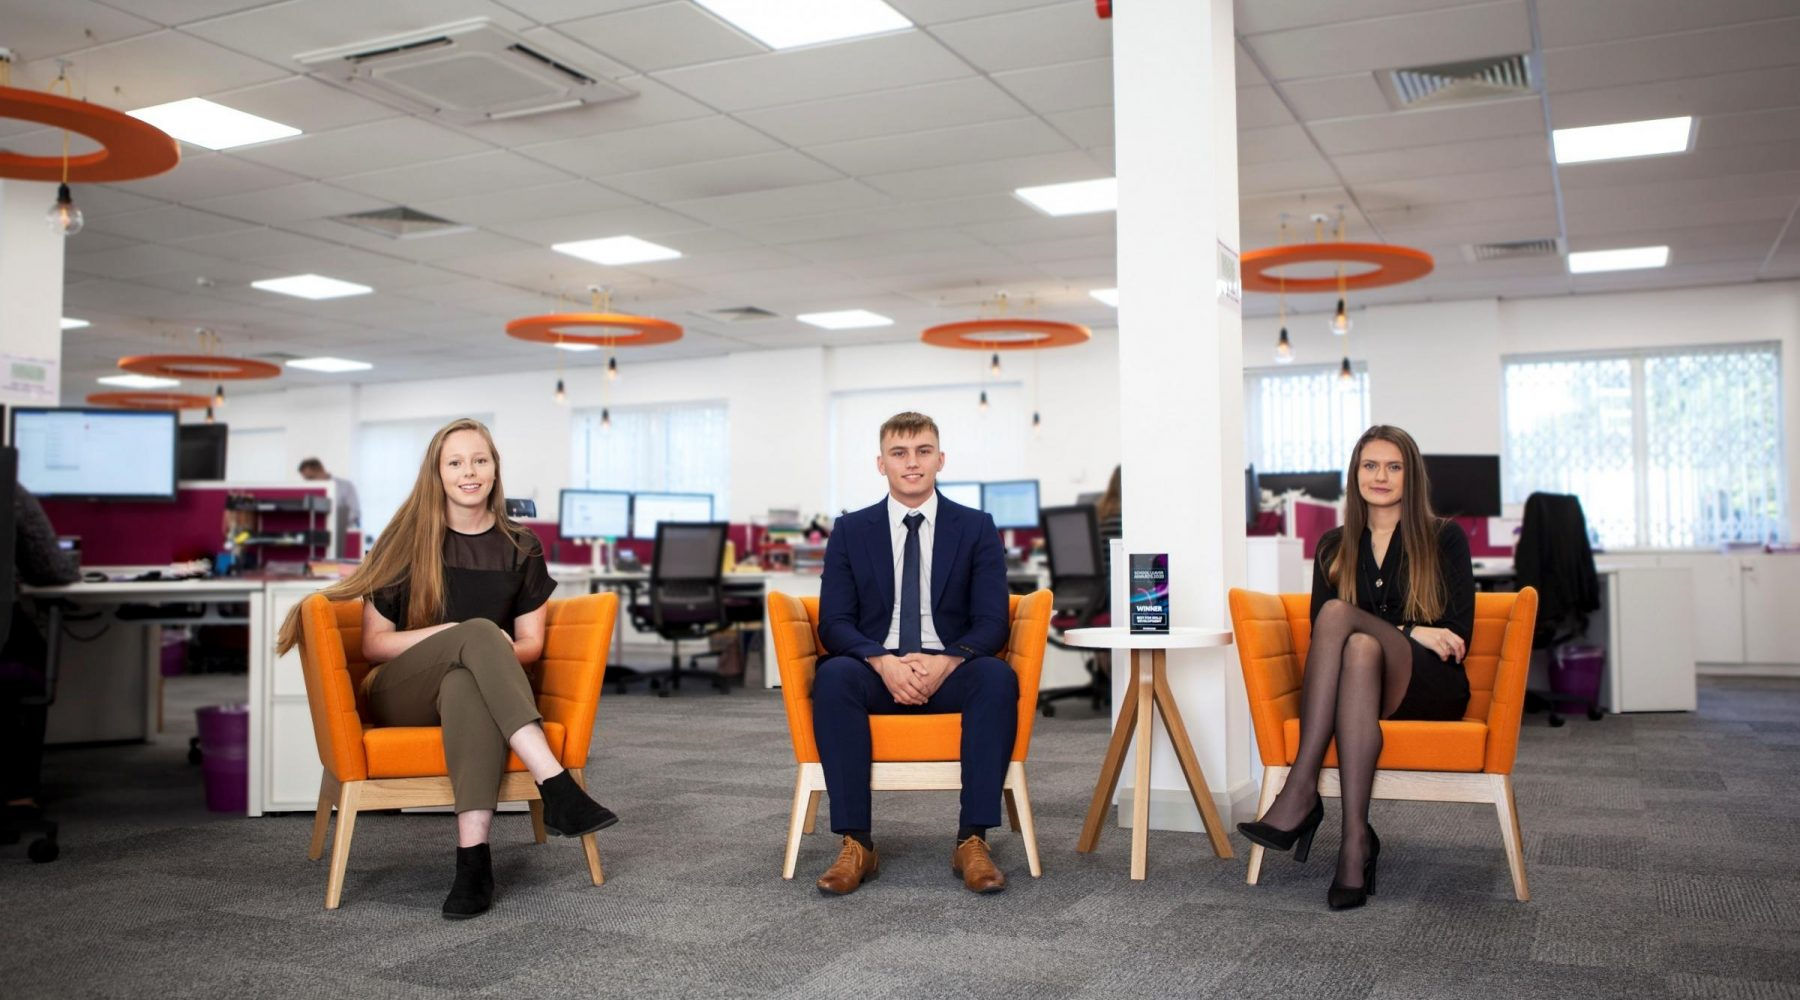 Bradford law firm welcomes its new intake of…